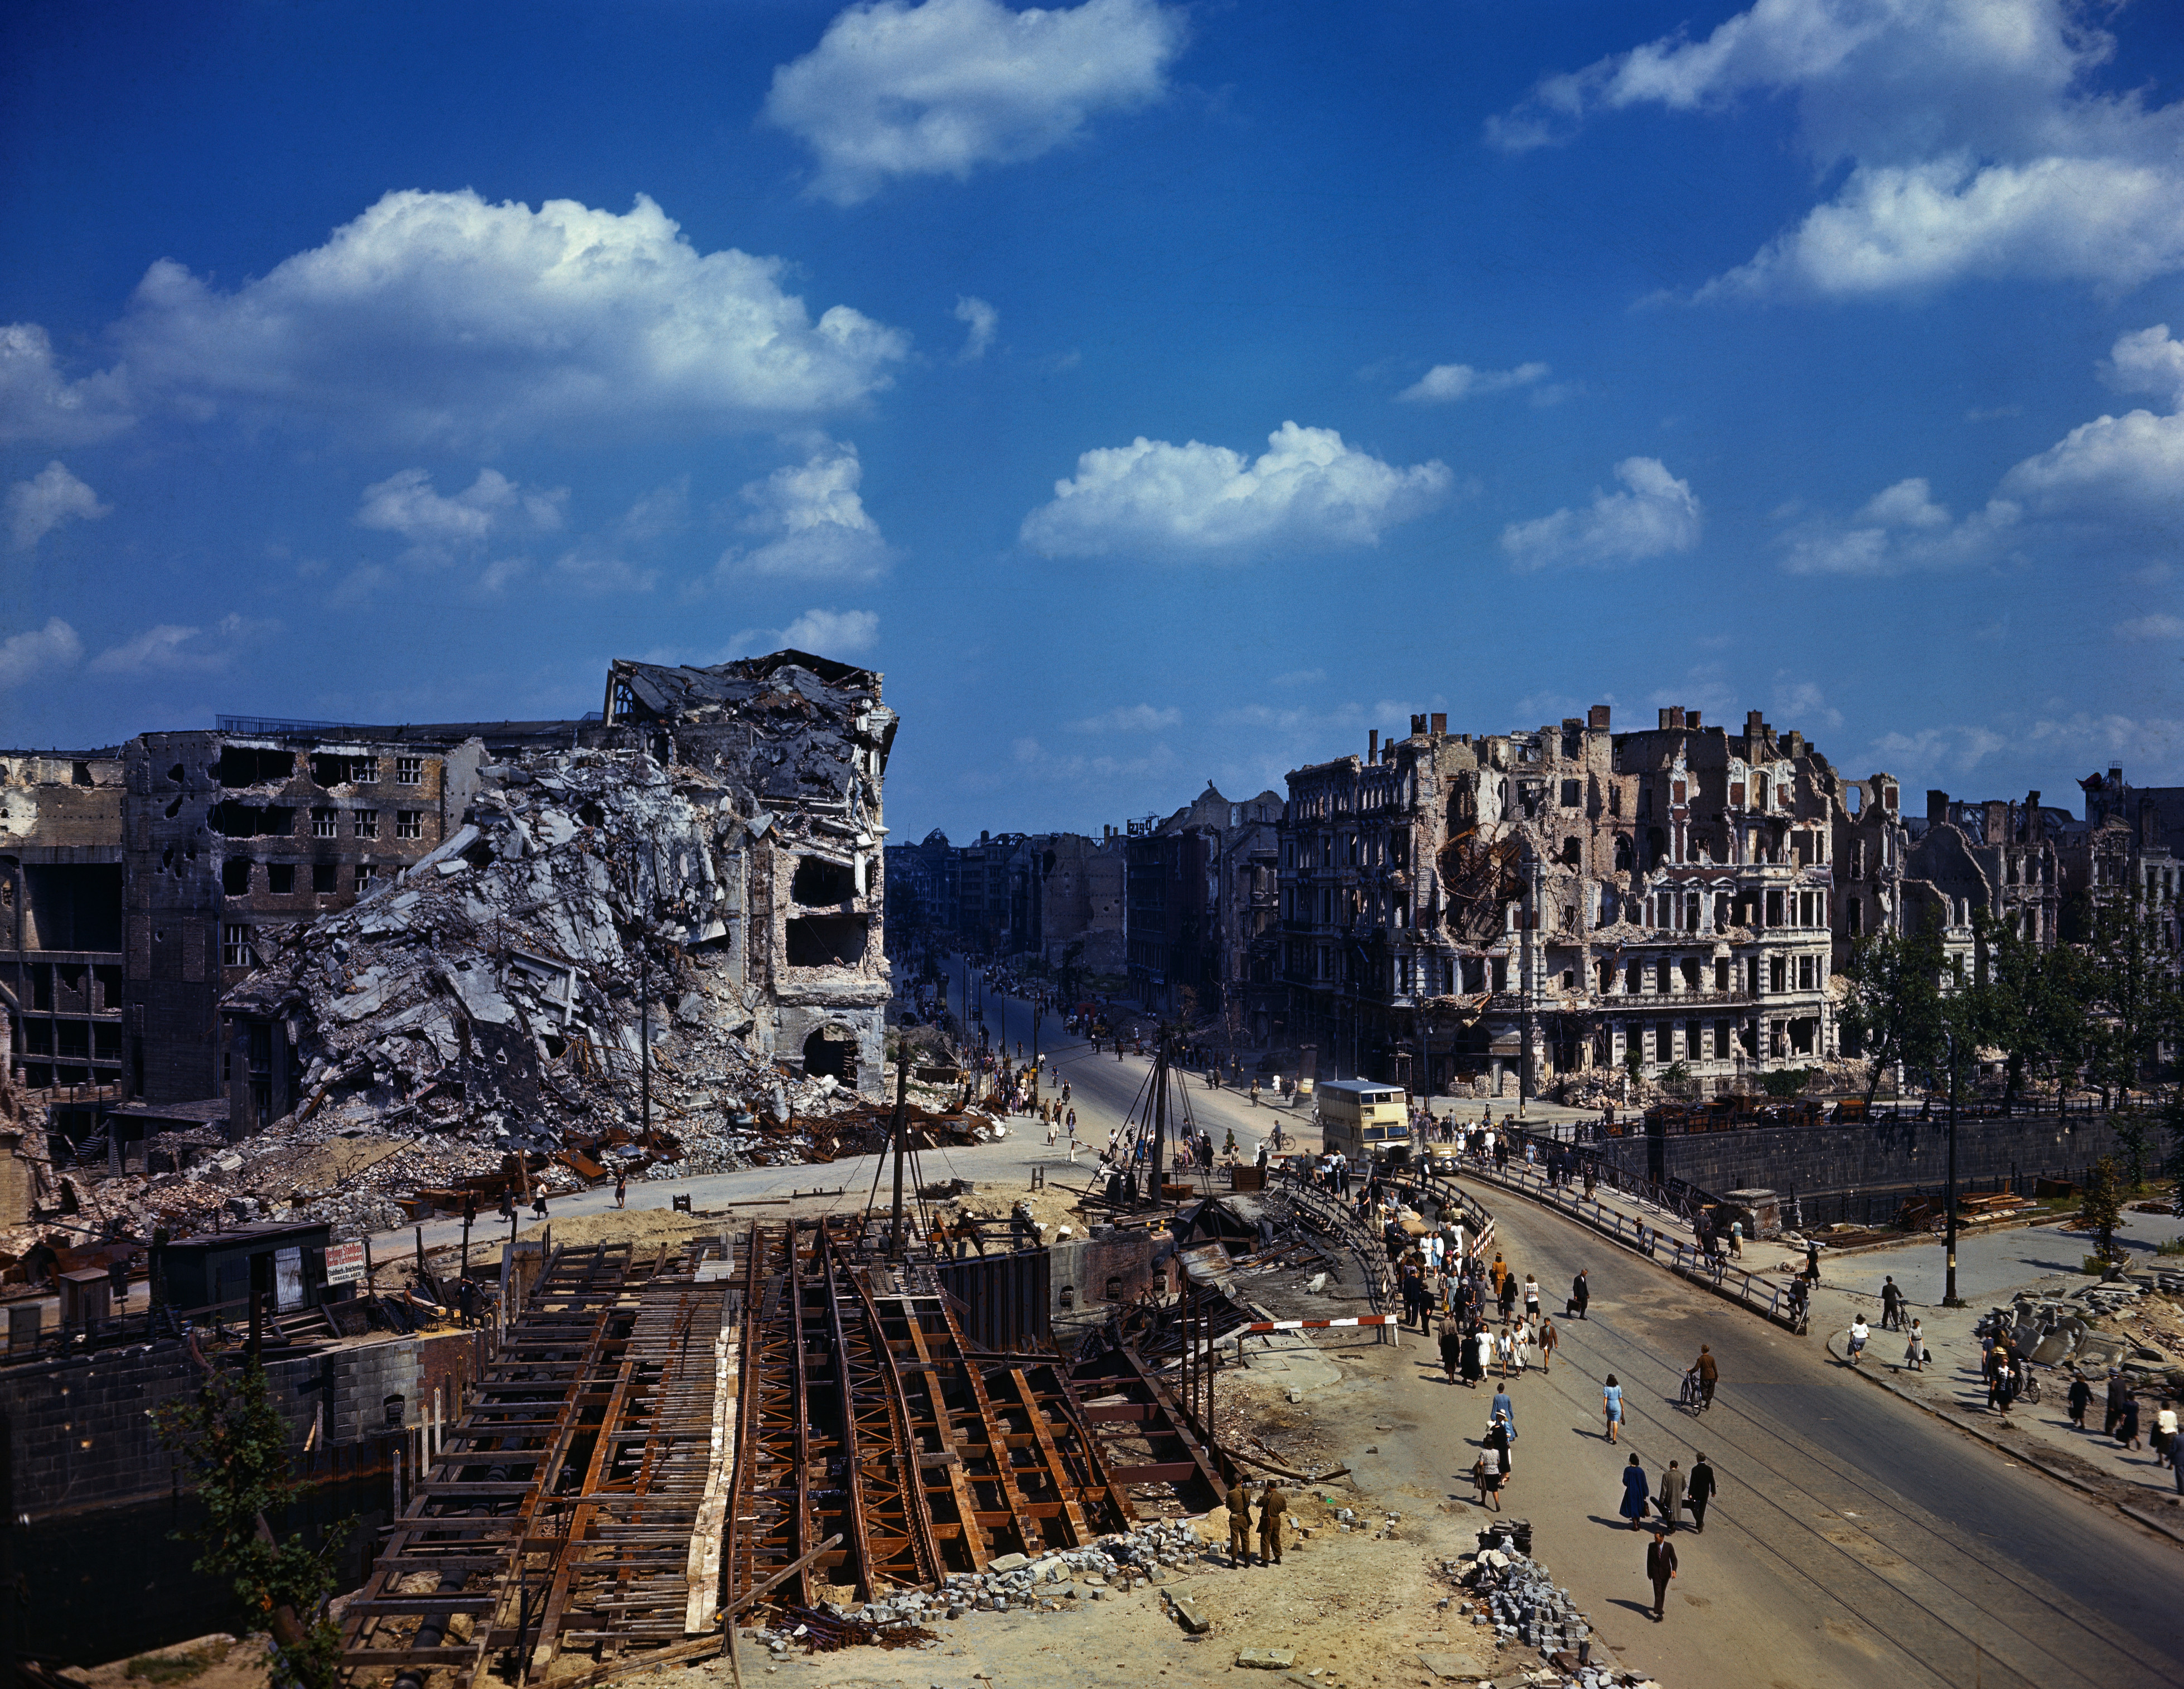 BBC - Travel - Vintage Berlin: After World War II  |Berlin Germany After Wwii